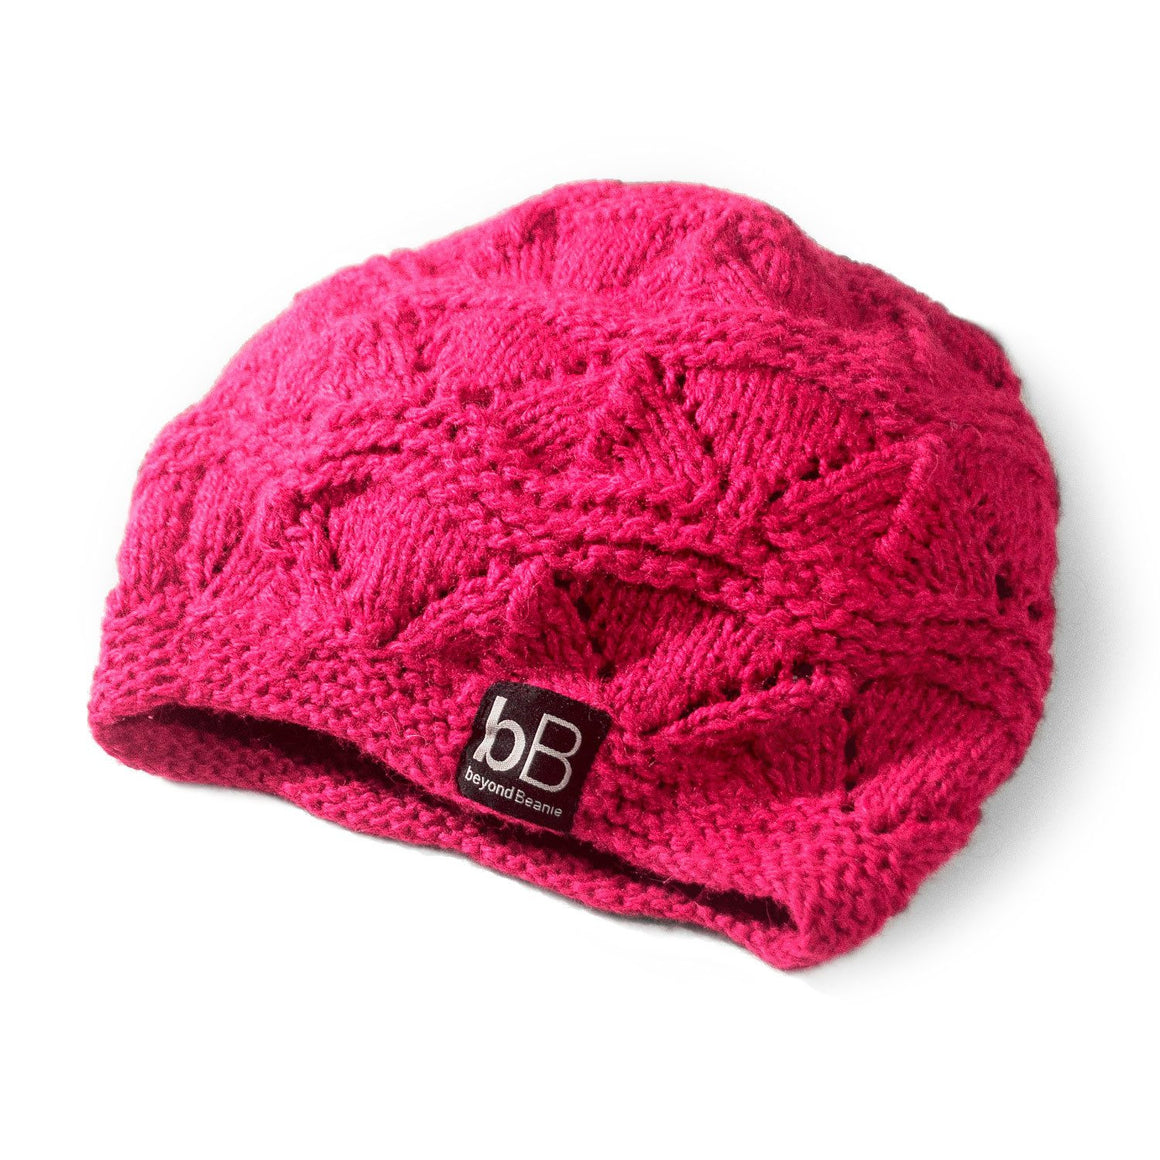 35b3ab0215c Beanies by bB beyond Beanie helping Bolivia. Tagged